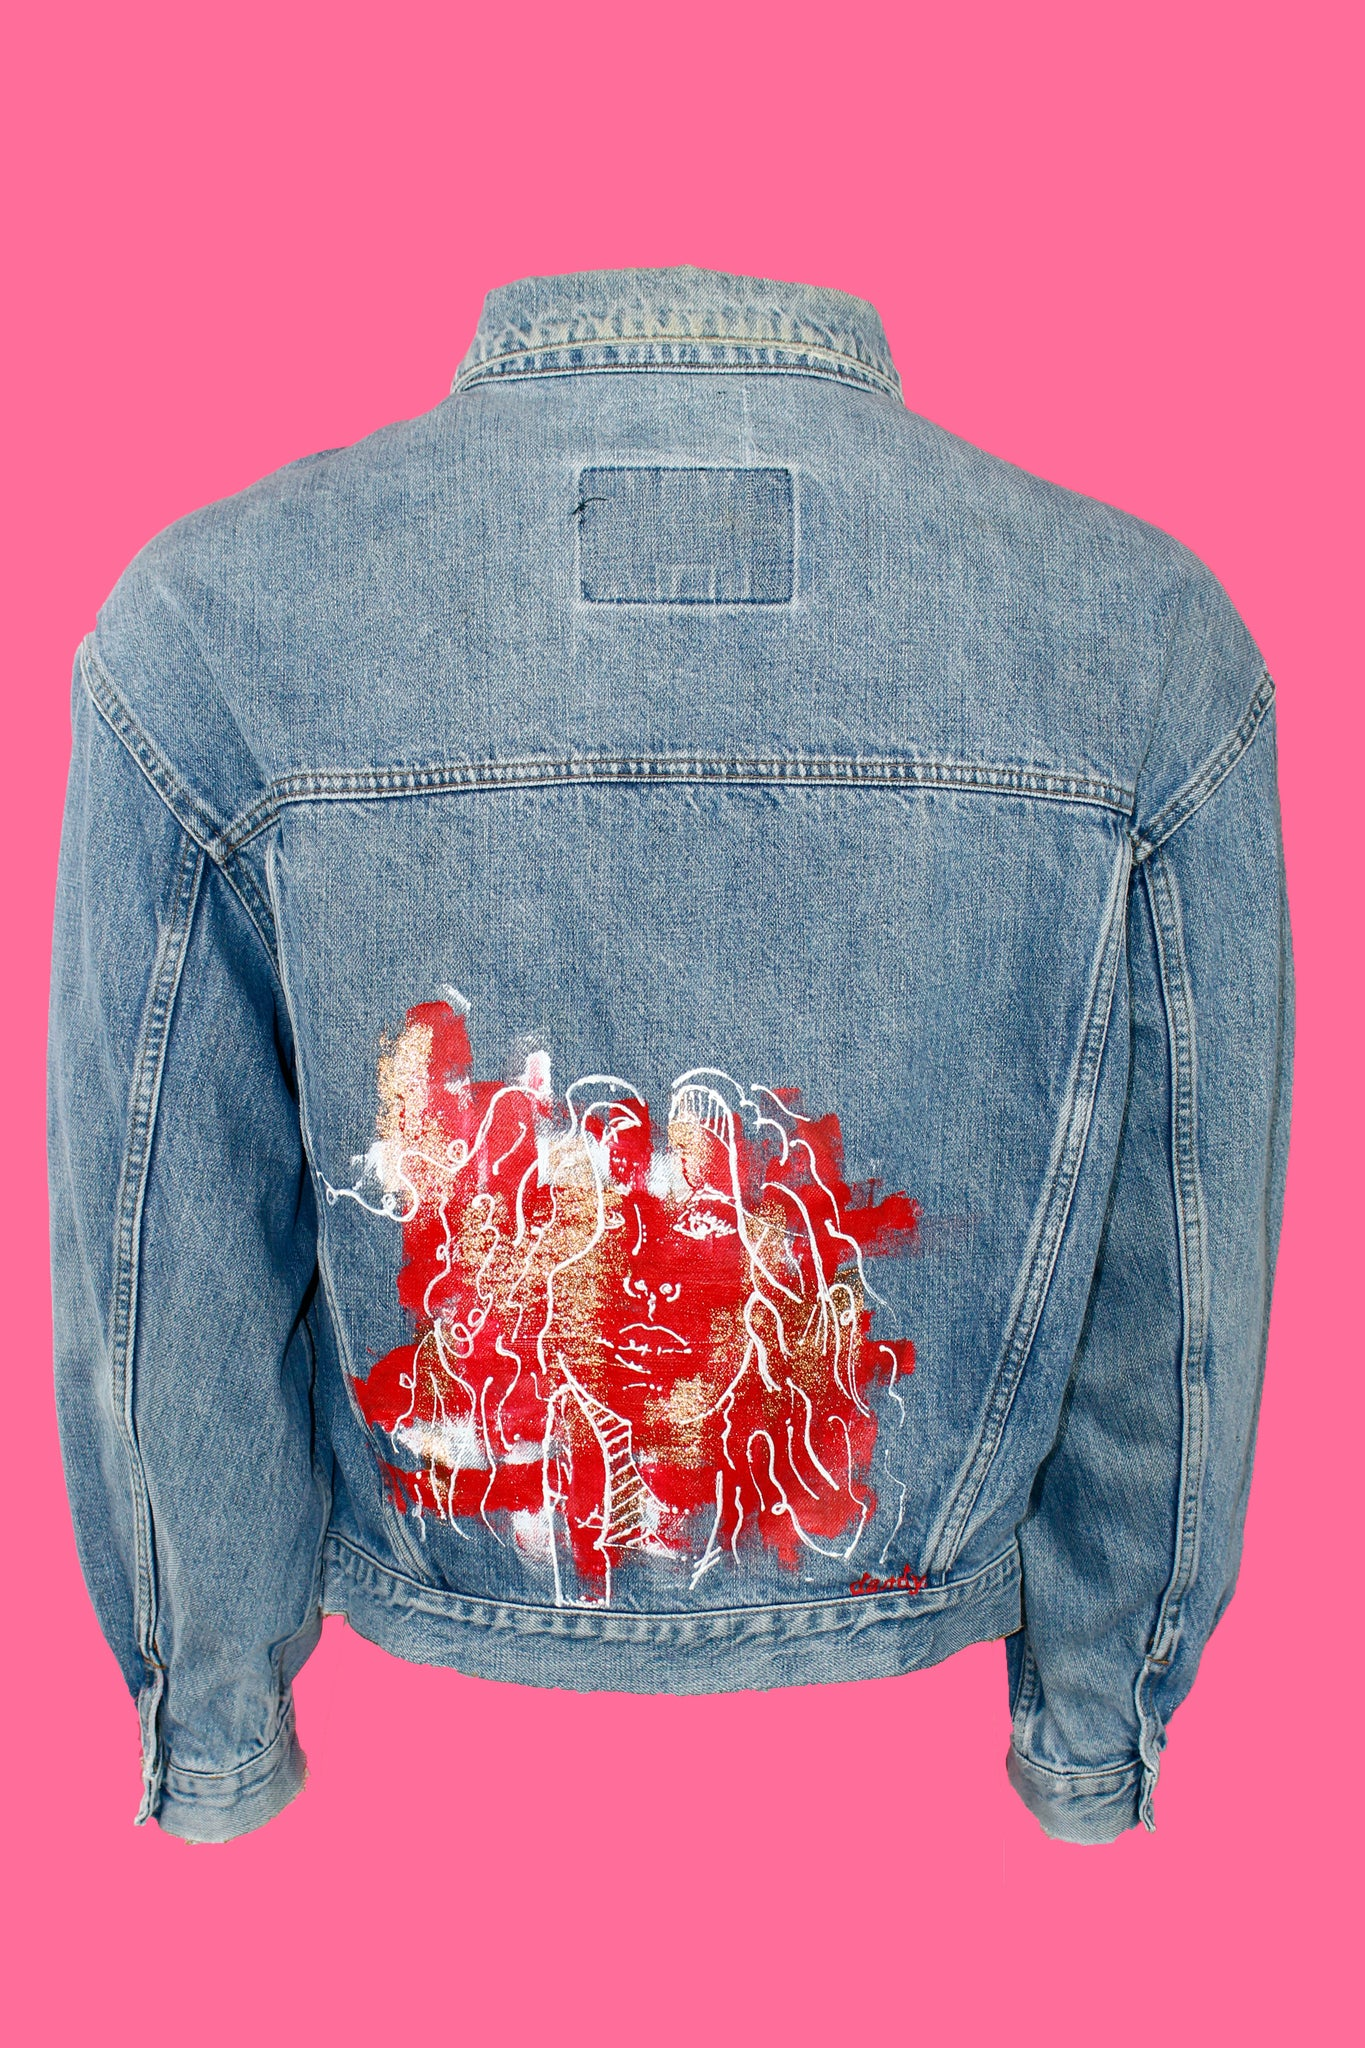 Dandy Fire Girl Jean Jacket